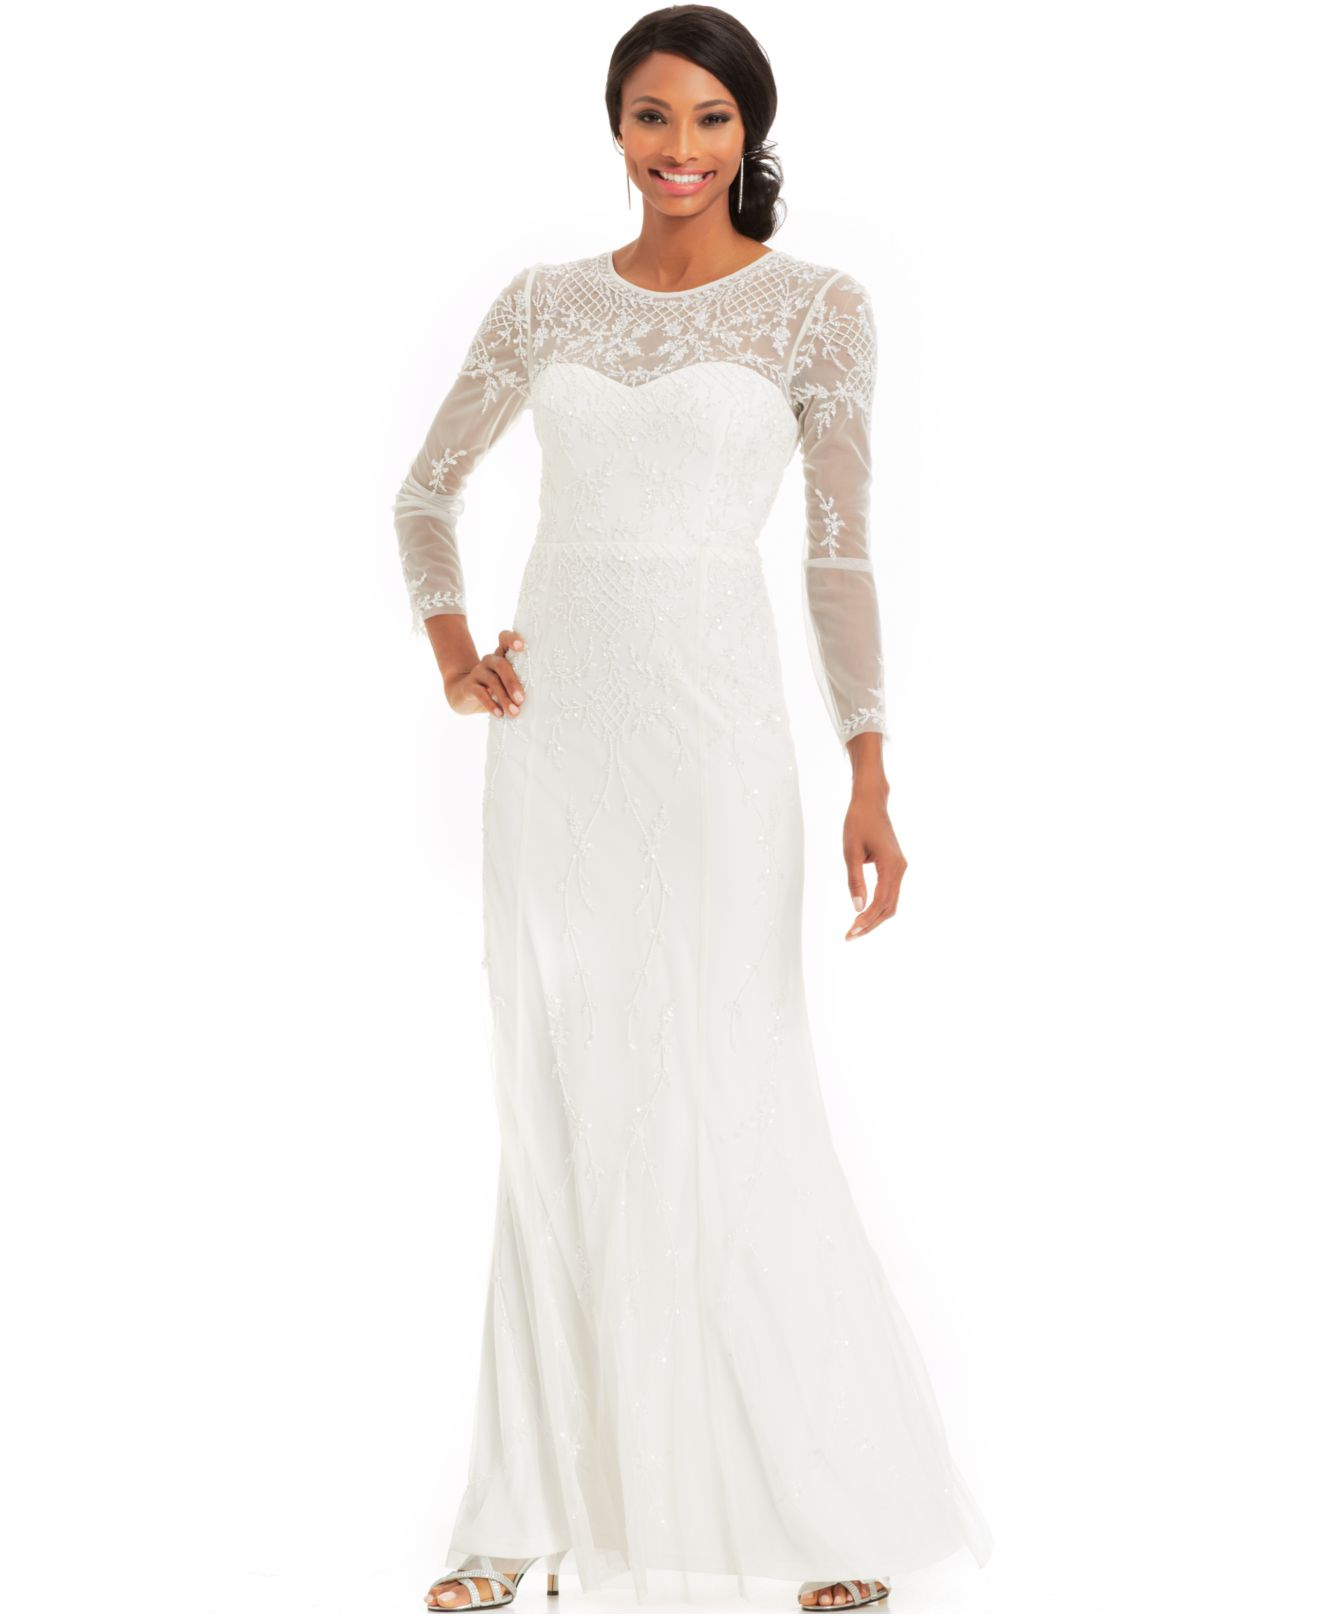 Adrianna Papell Long Sleeve Beaded Illusion Gown In White